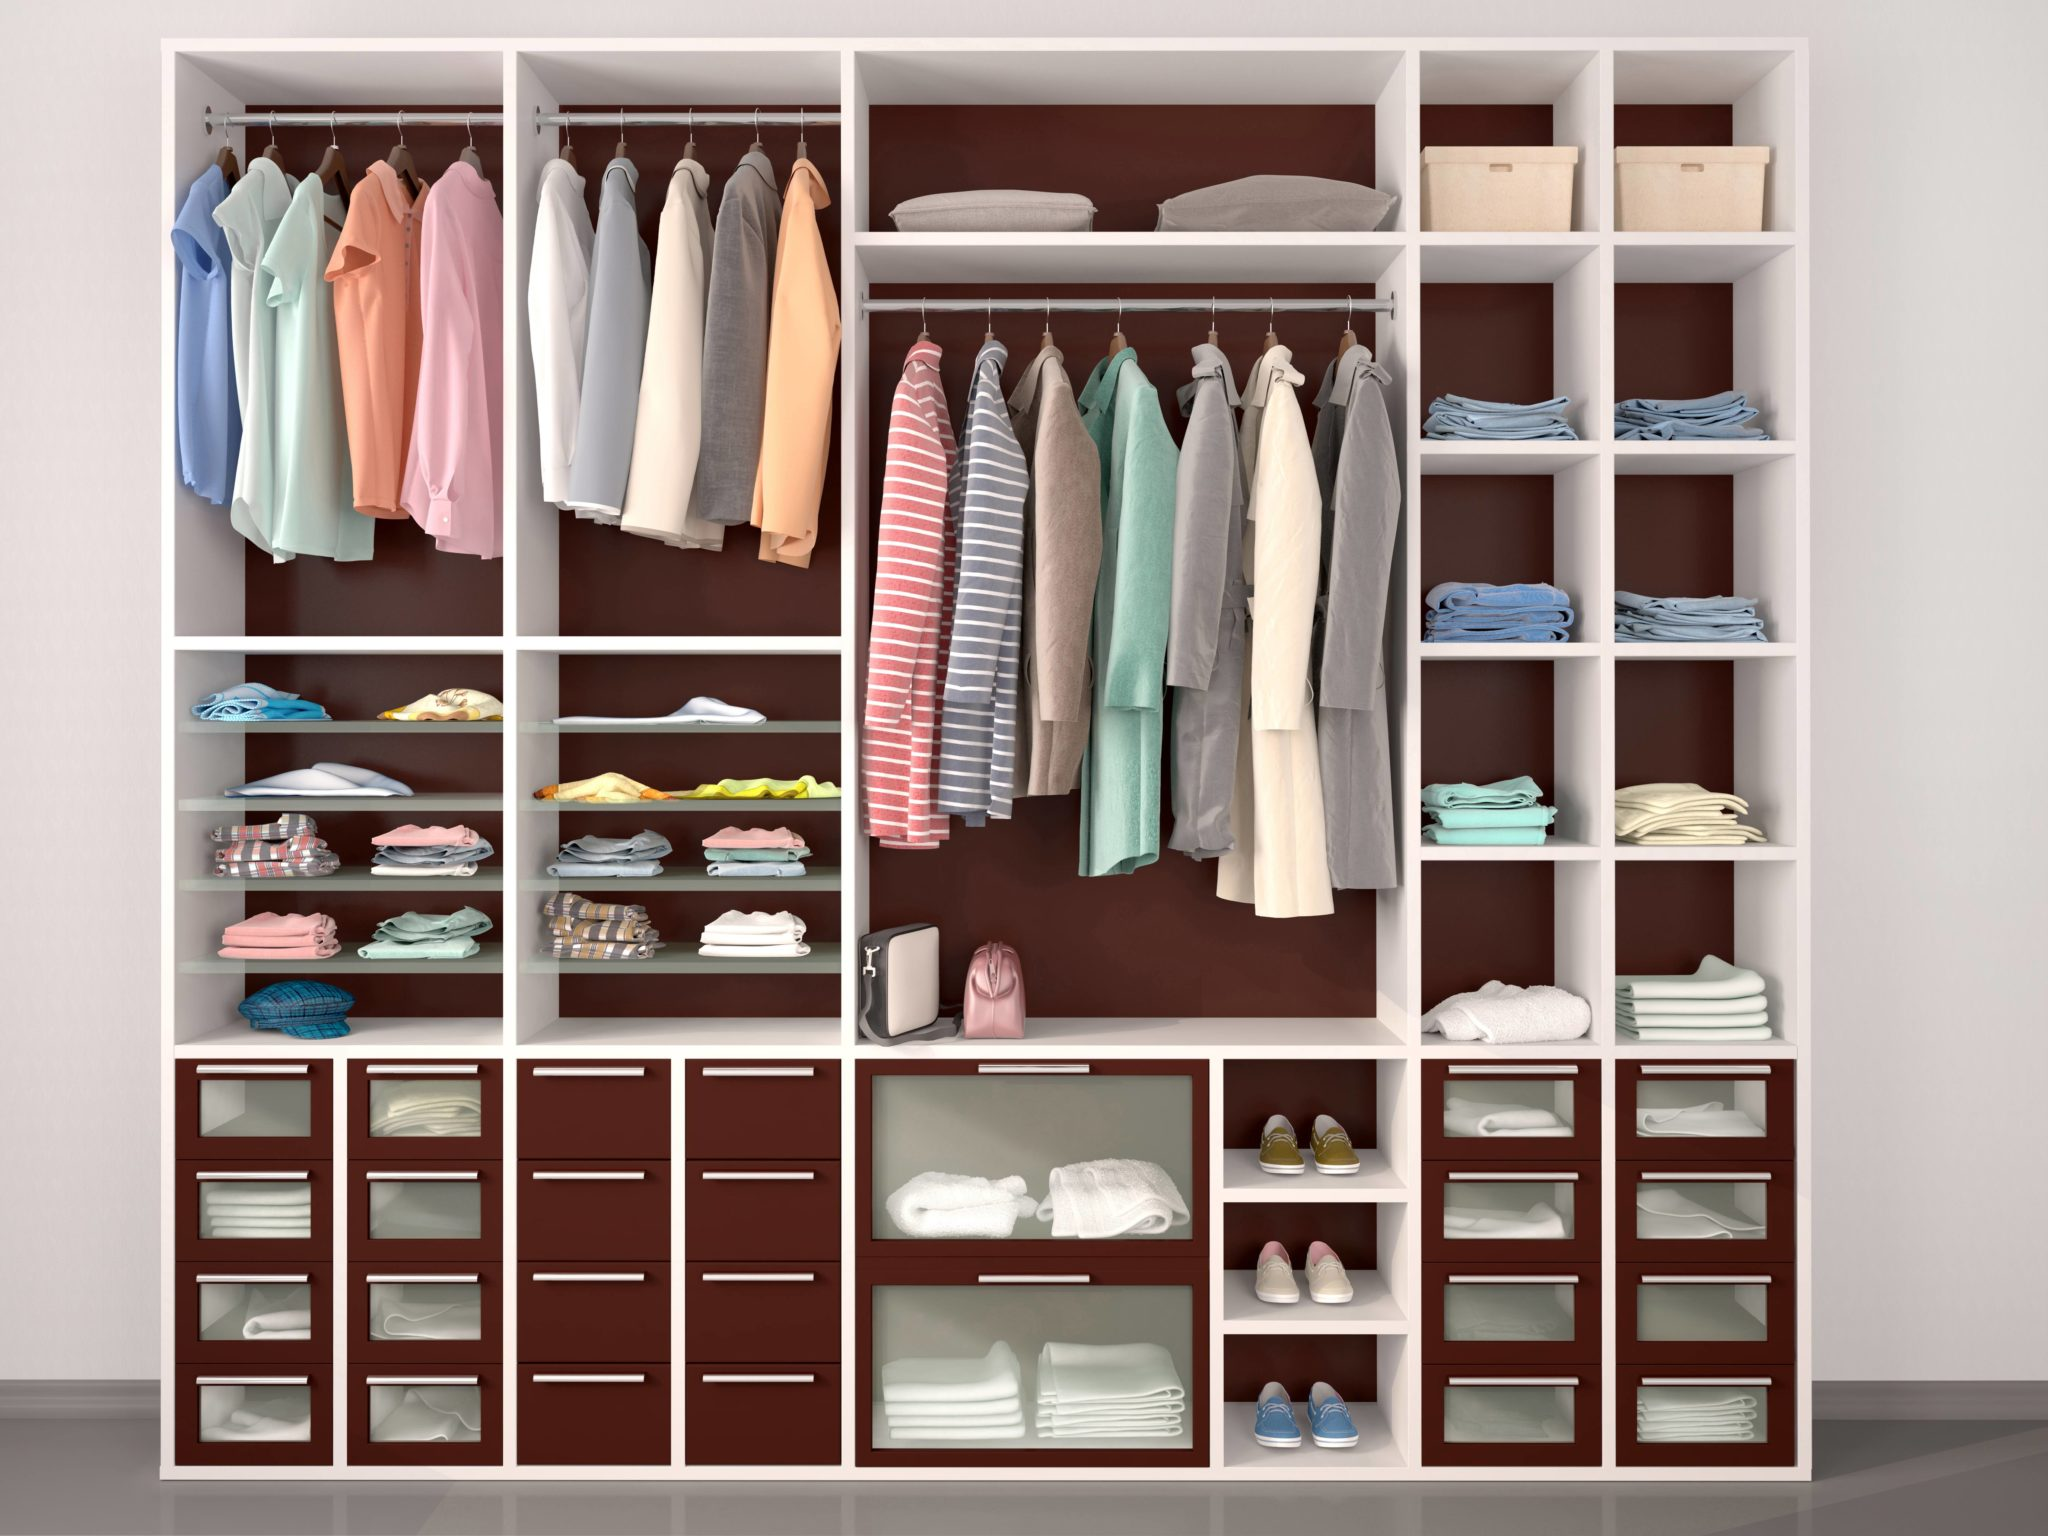 Closet Organization 3 Step Plan For Ultimate Closet Organization The Money Pit